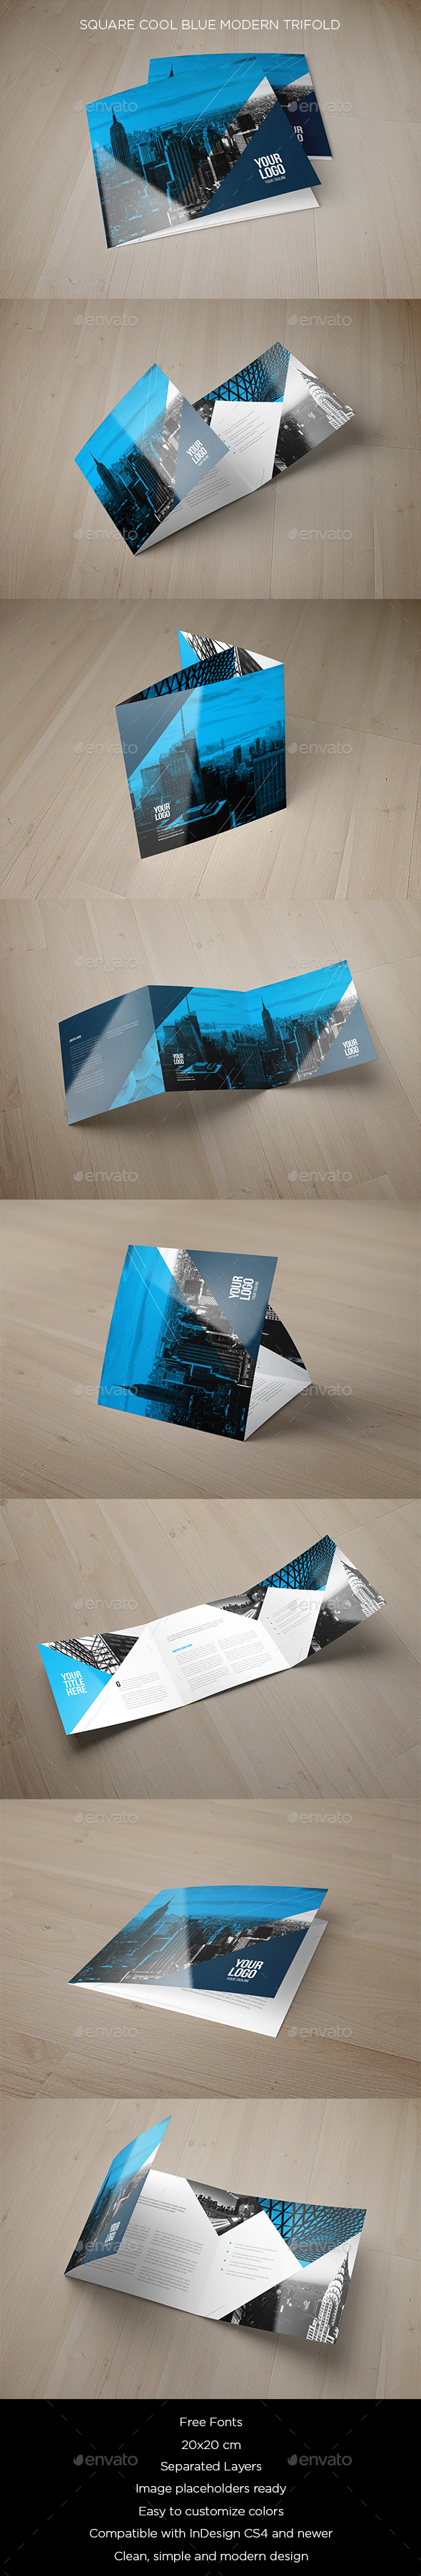 Square Cool Blue Modern Trifold - Brochures Print Templates